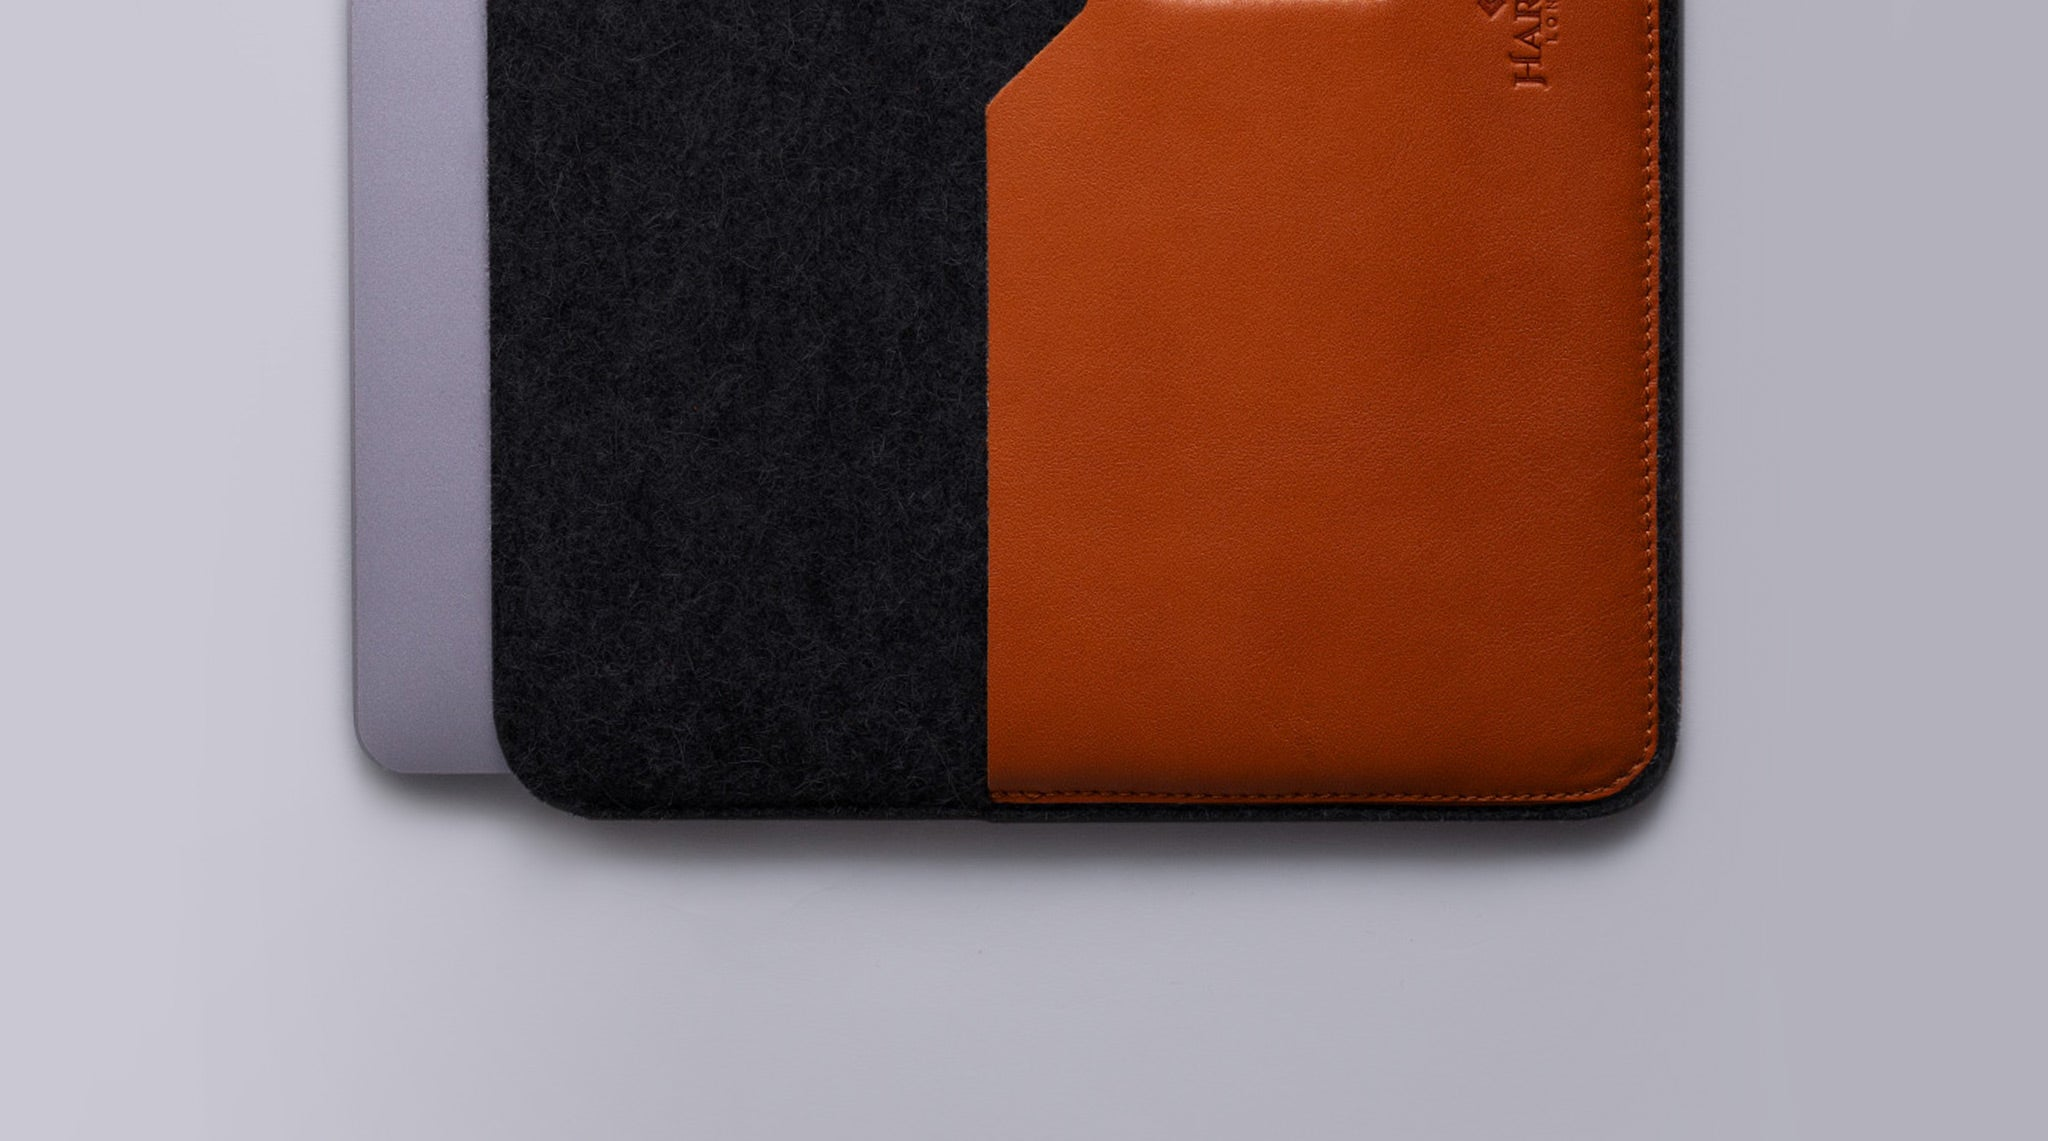 Funda de cuero para Macbook.